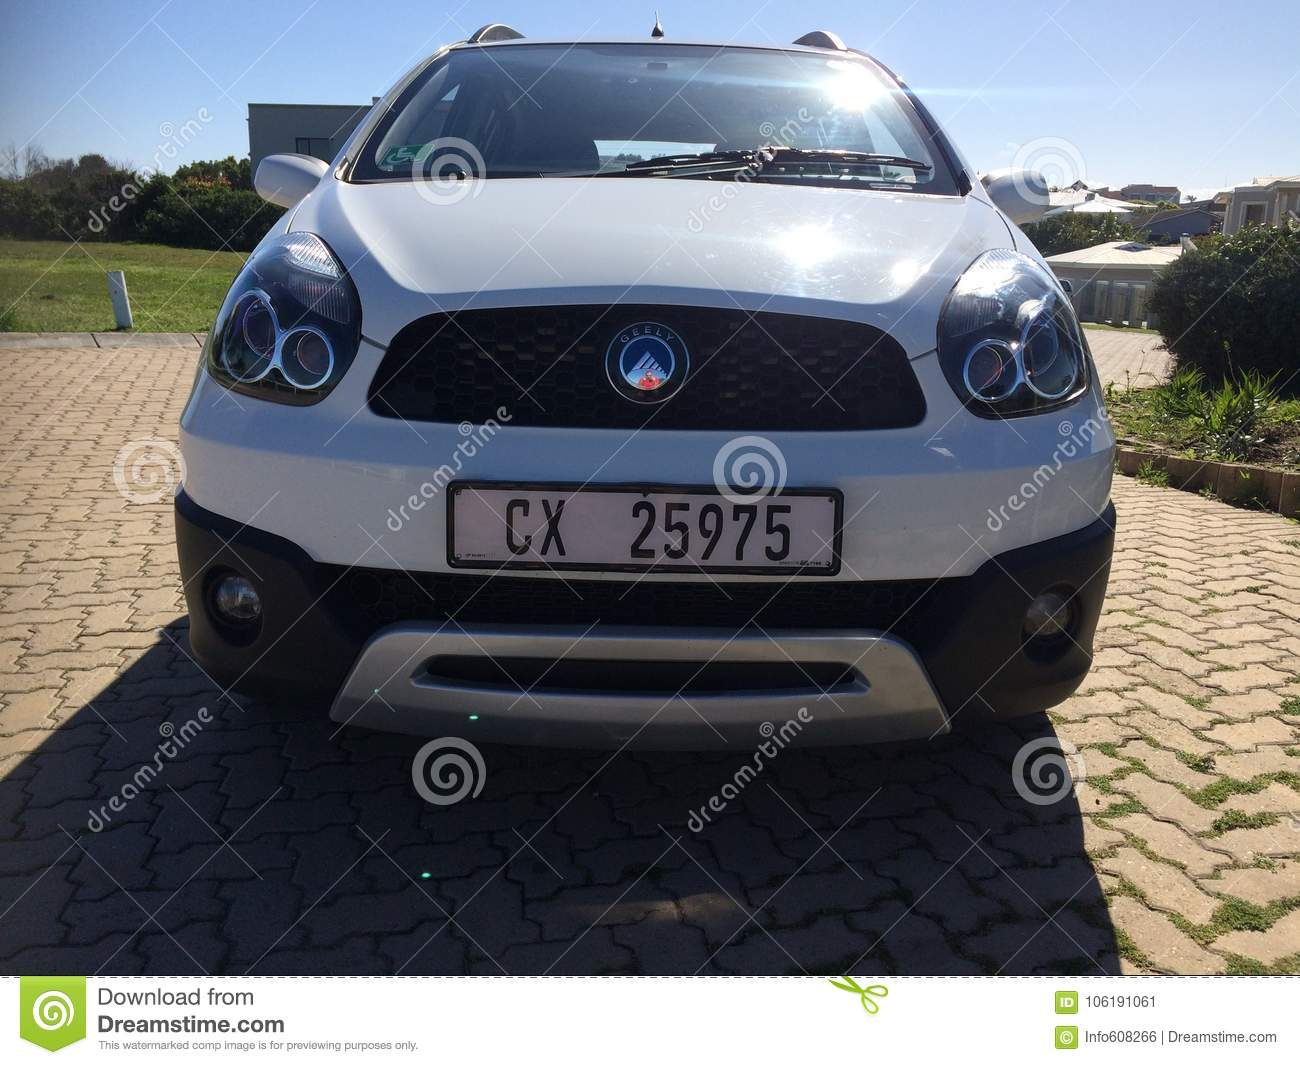 Car Manufacturers In South Africa Geely Gx2 1 5 After 3 Years Editorial Photo Image Of